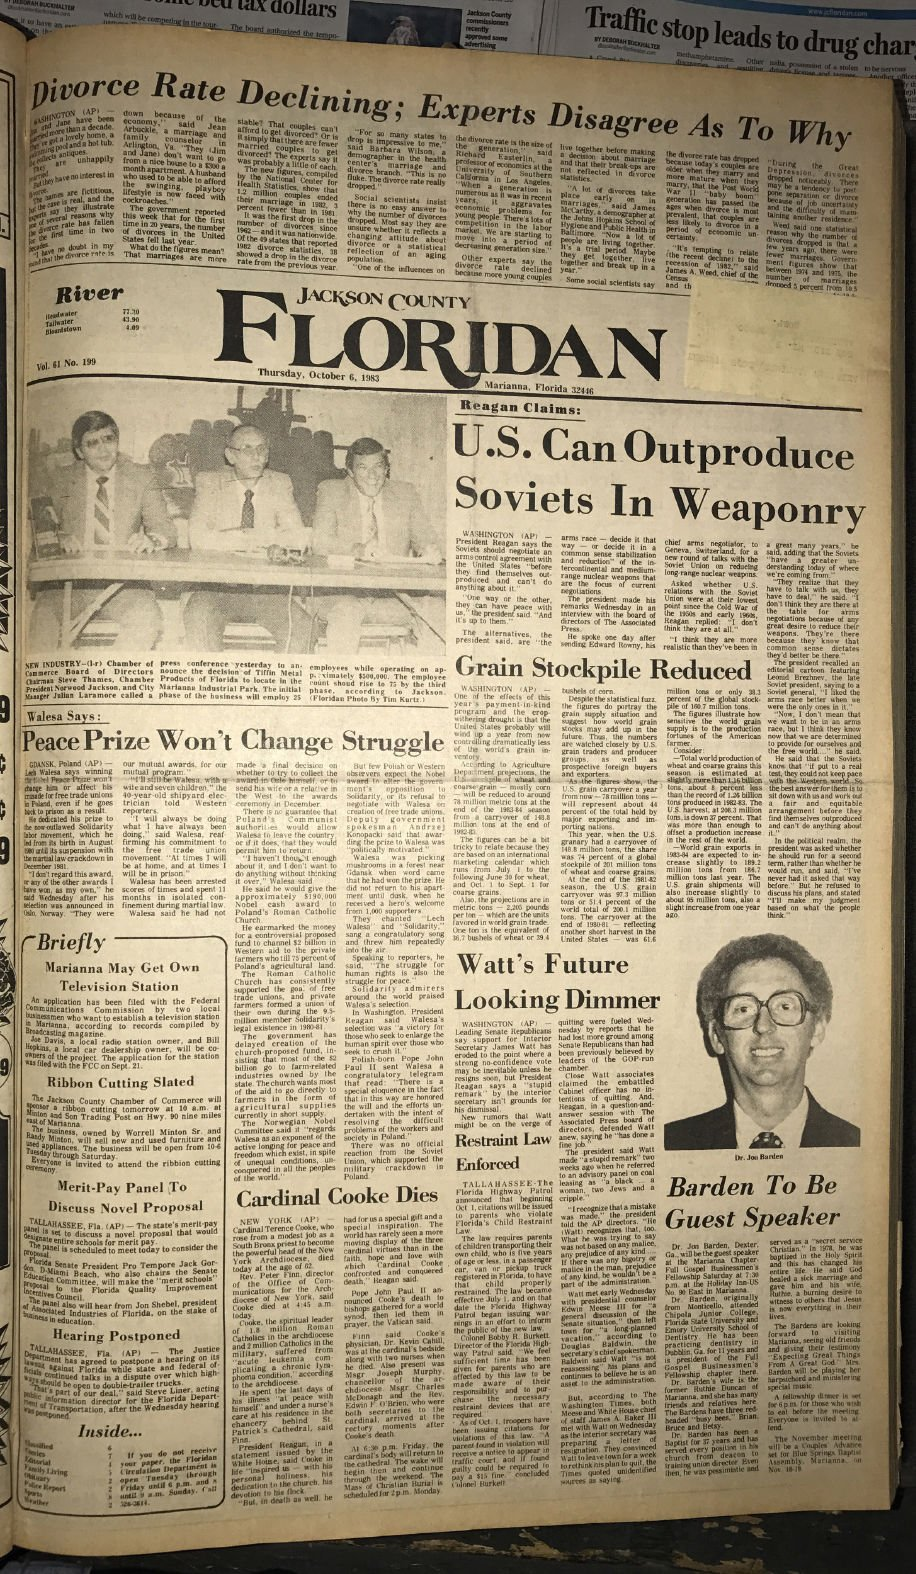 Archives: Oct. 6, 1983